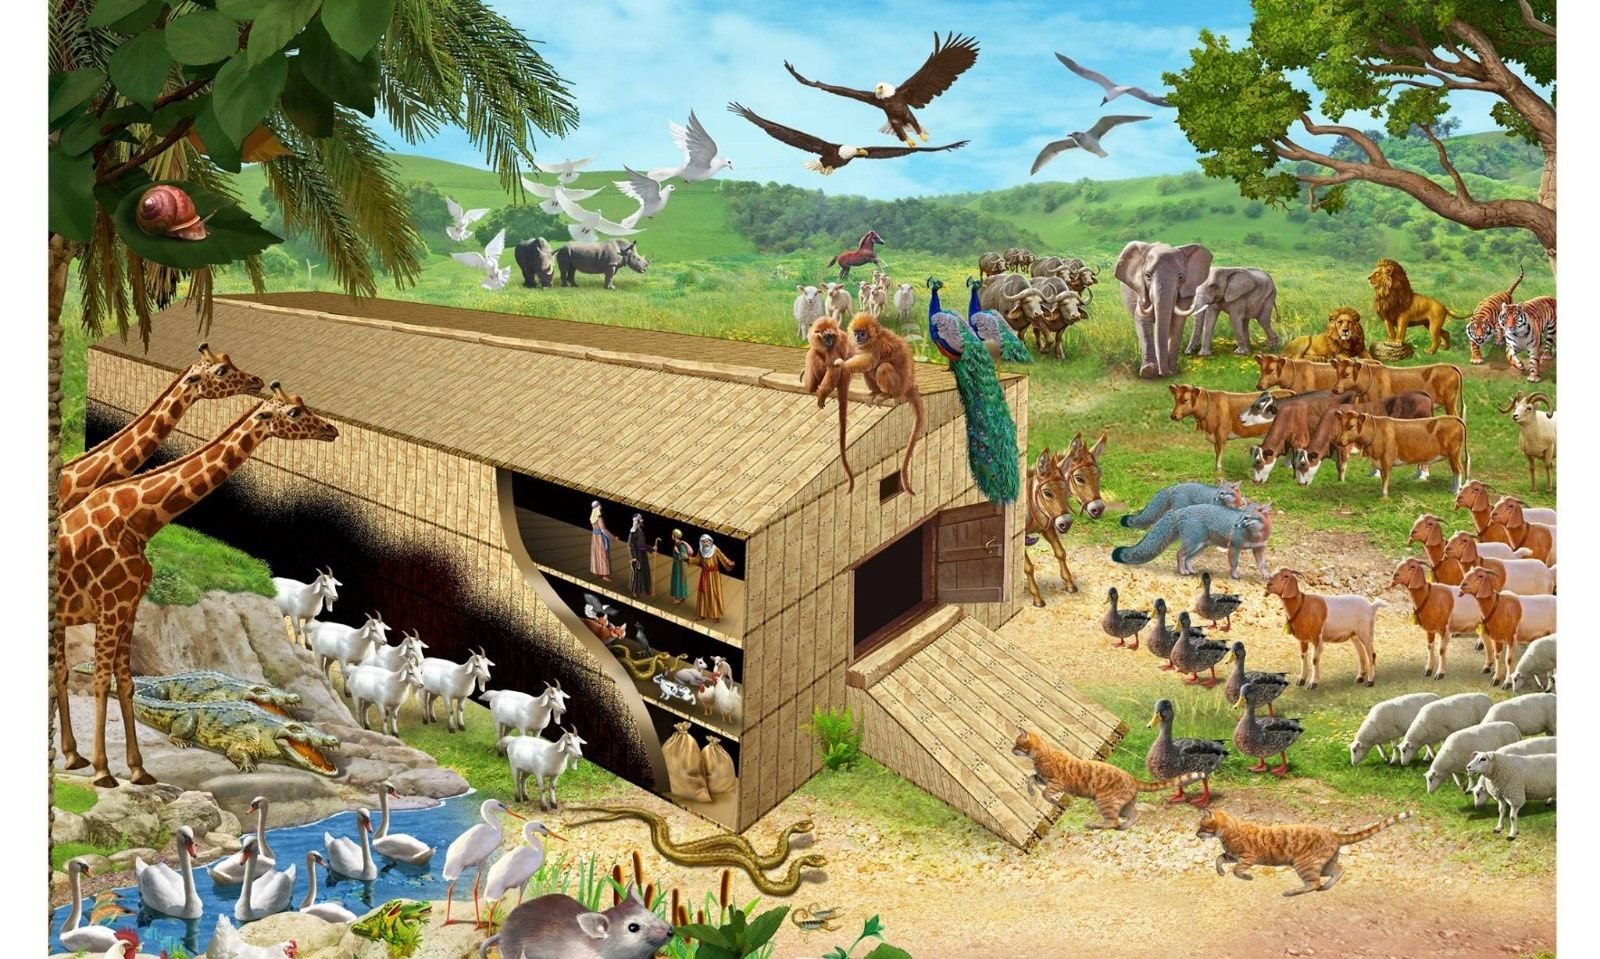 What's your Noah's ark?